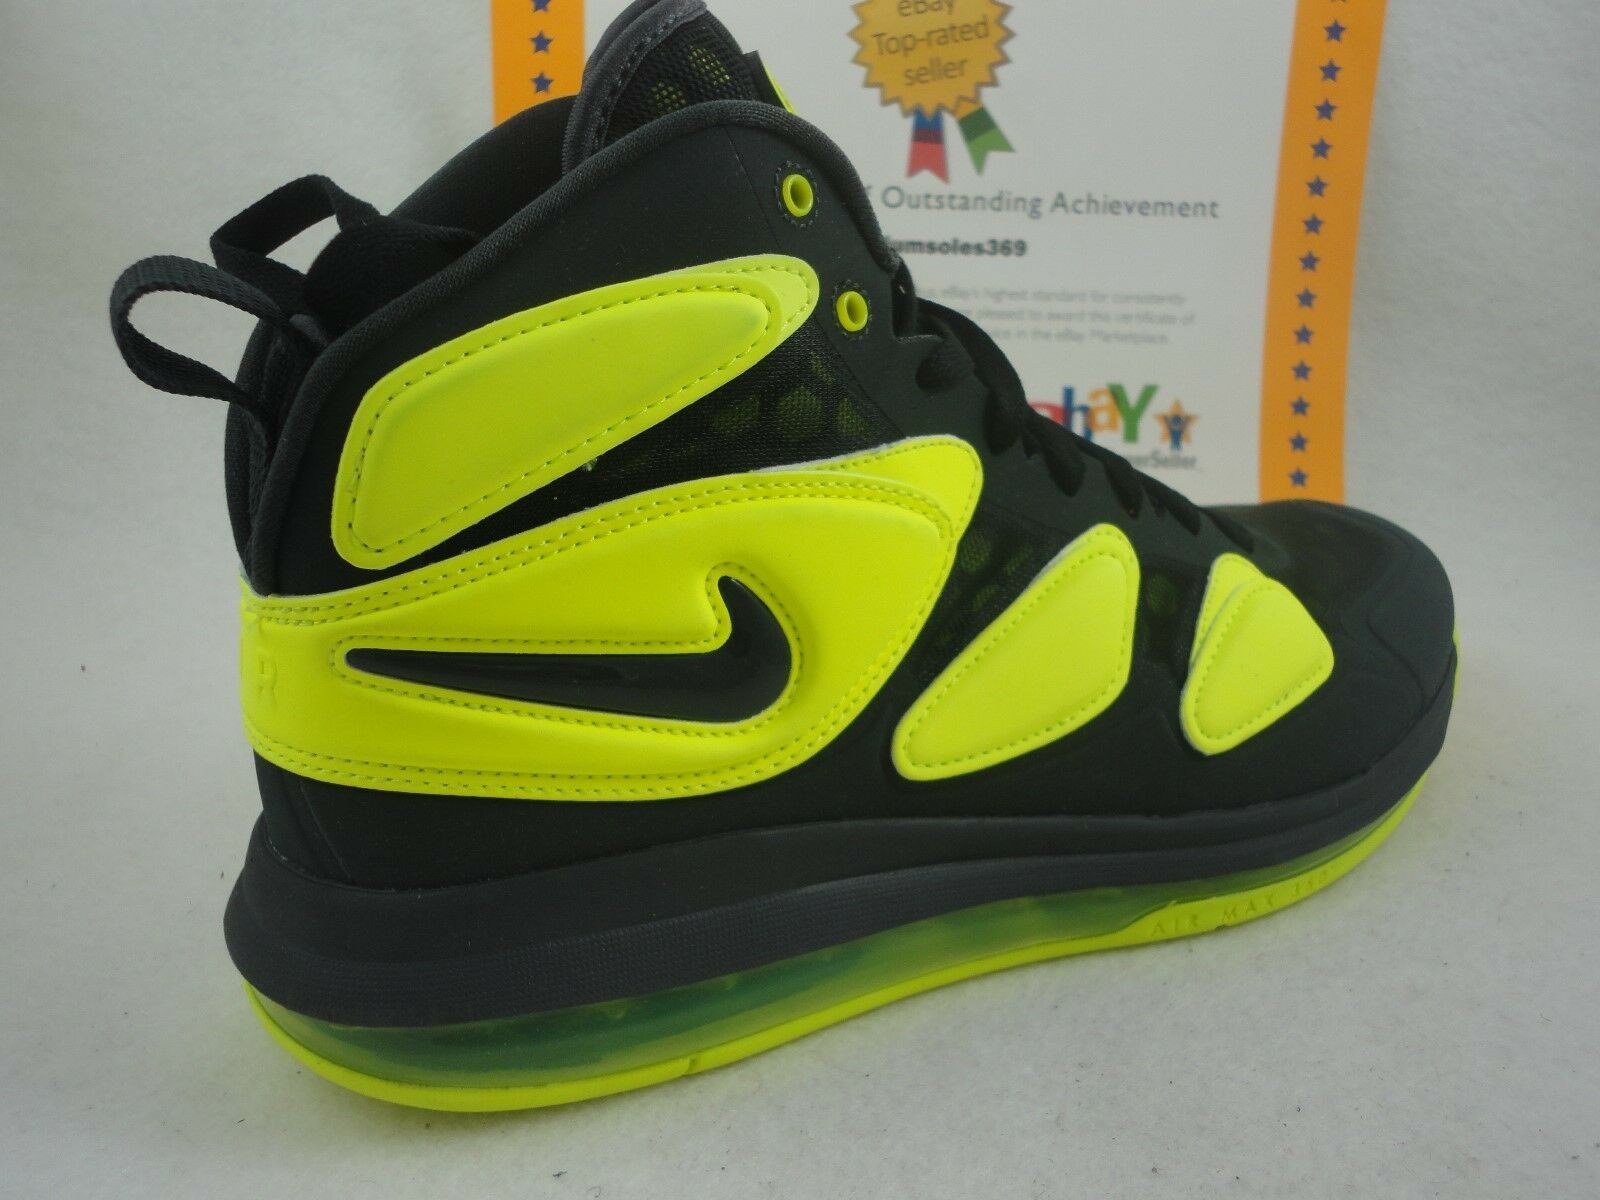 Nike Air Max SQ Uptempo ZM, Uptempo 2, Total Air, Retail  190, Size 9